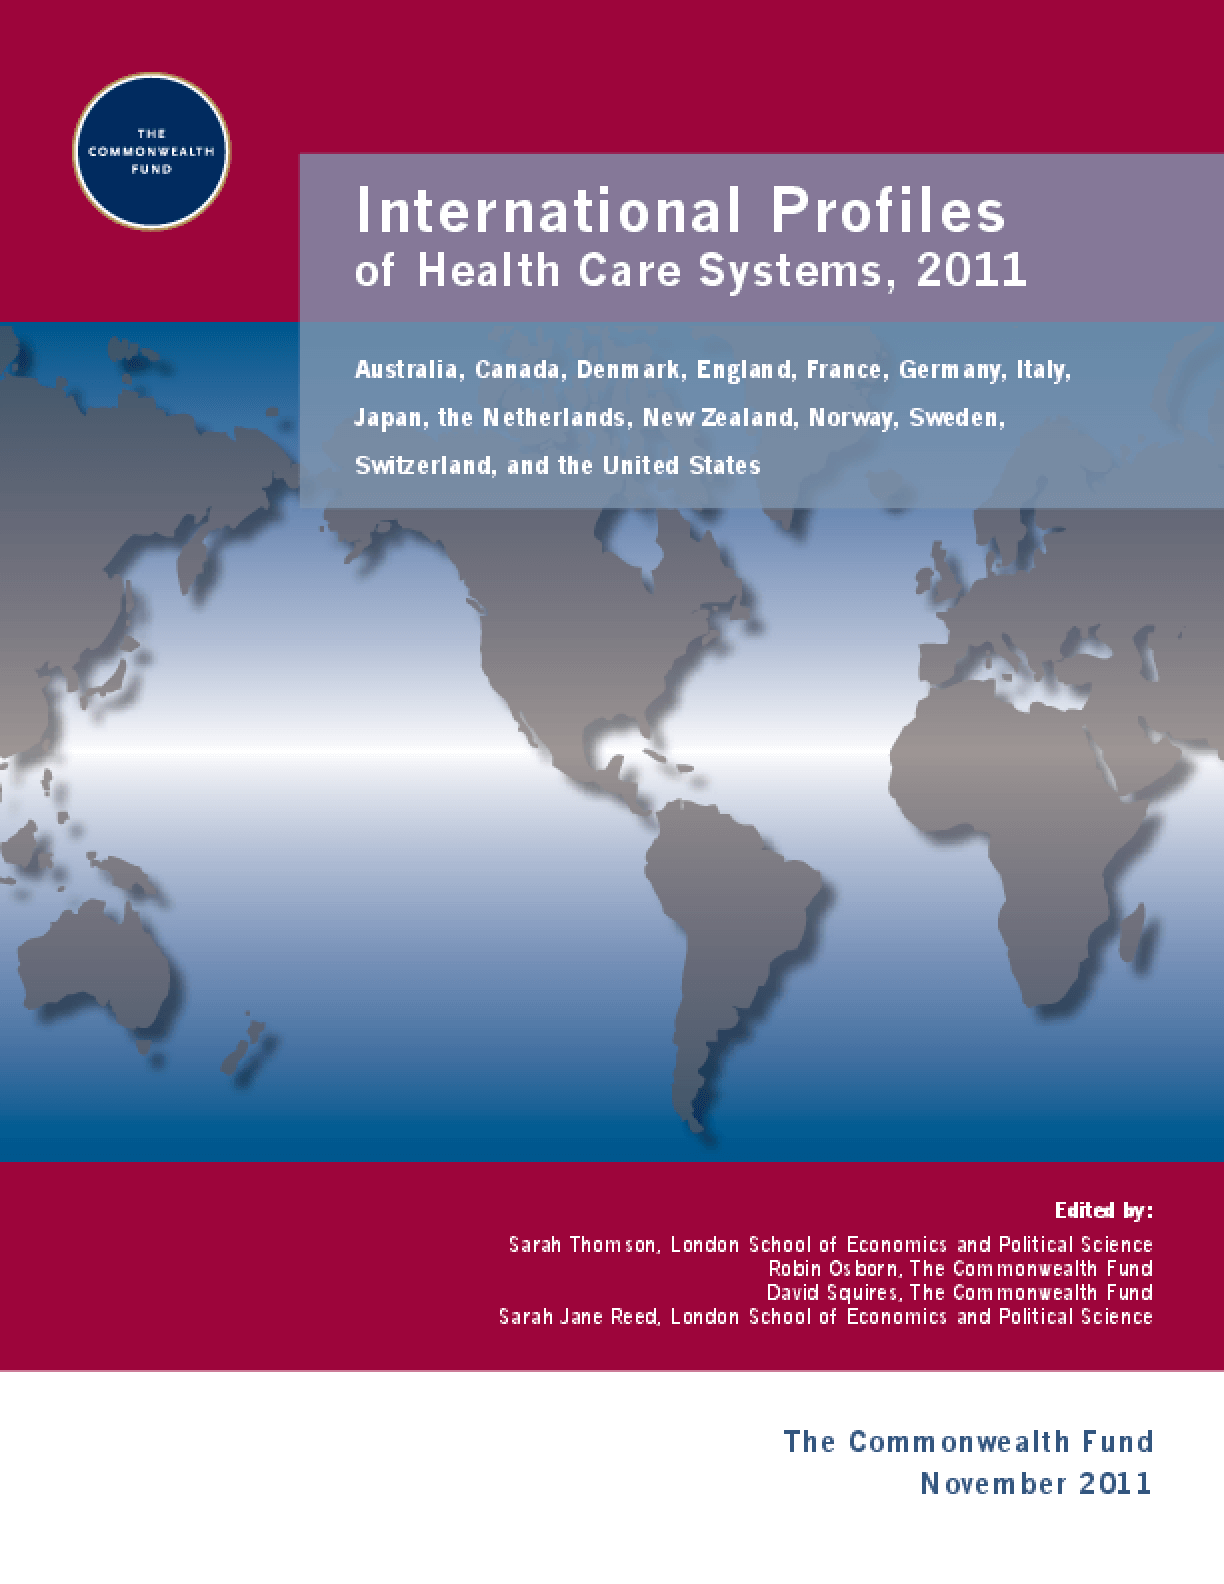 International Profiles of Health Care Systems, 2011